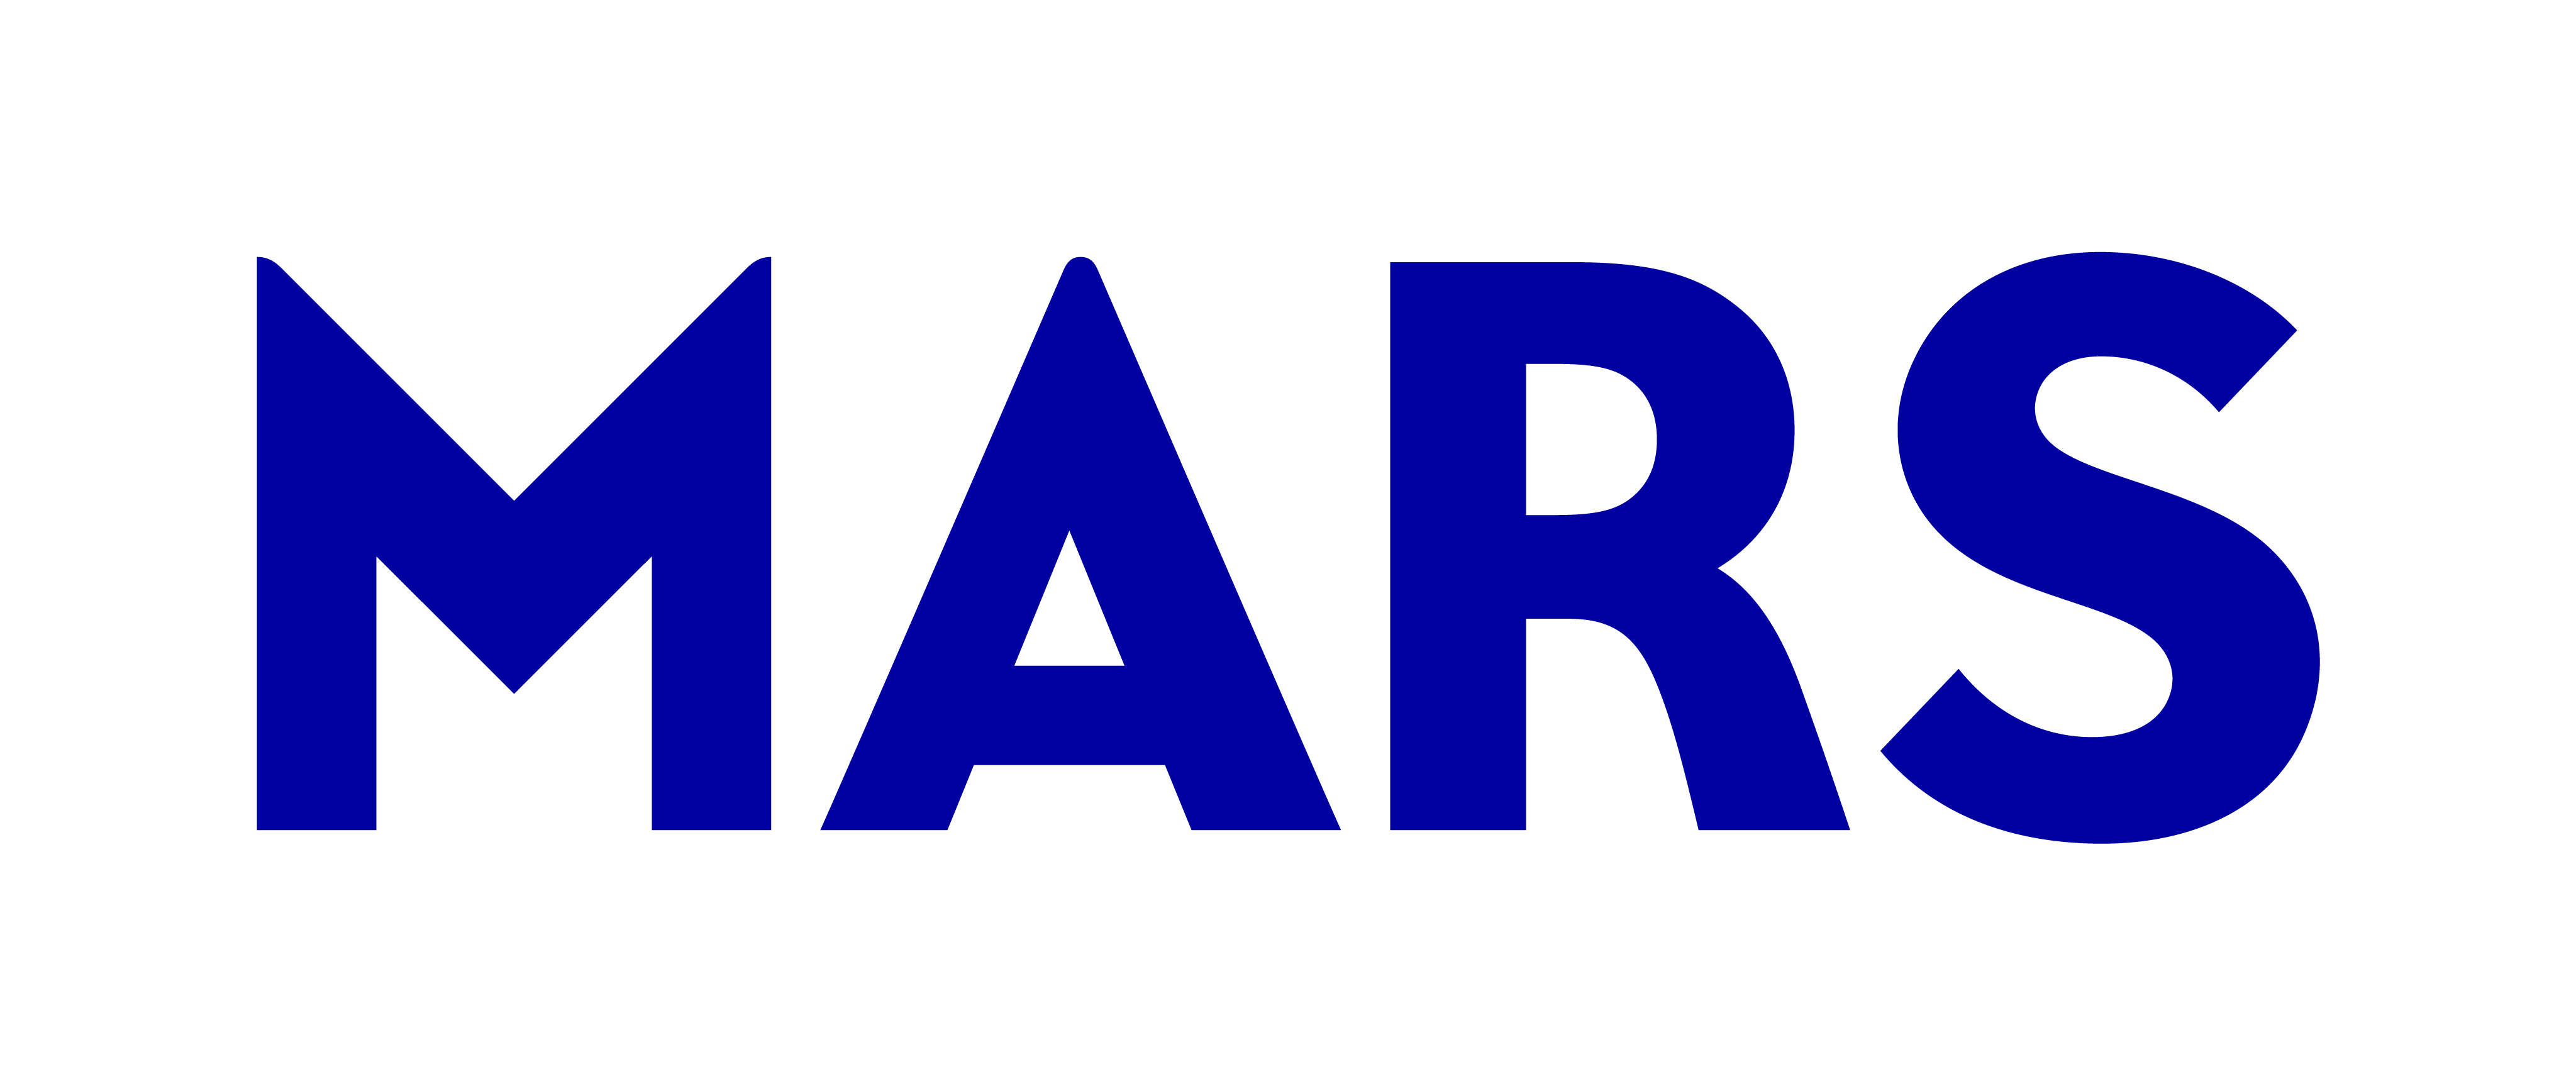 A logo for Mars Incorporated, American global manufacturer of confectionery, pet food, and other food products and a provider of animal care services